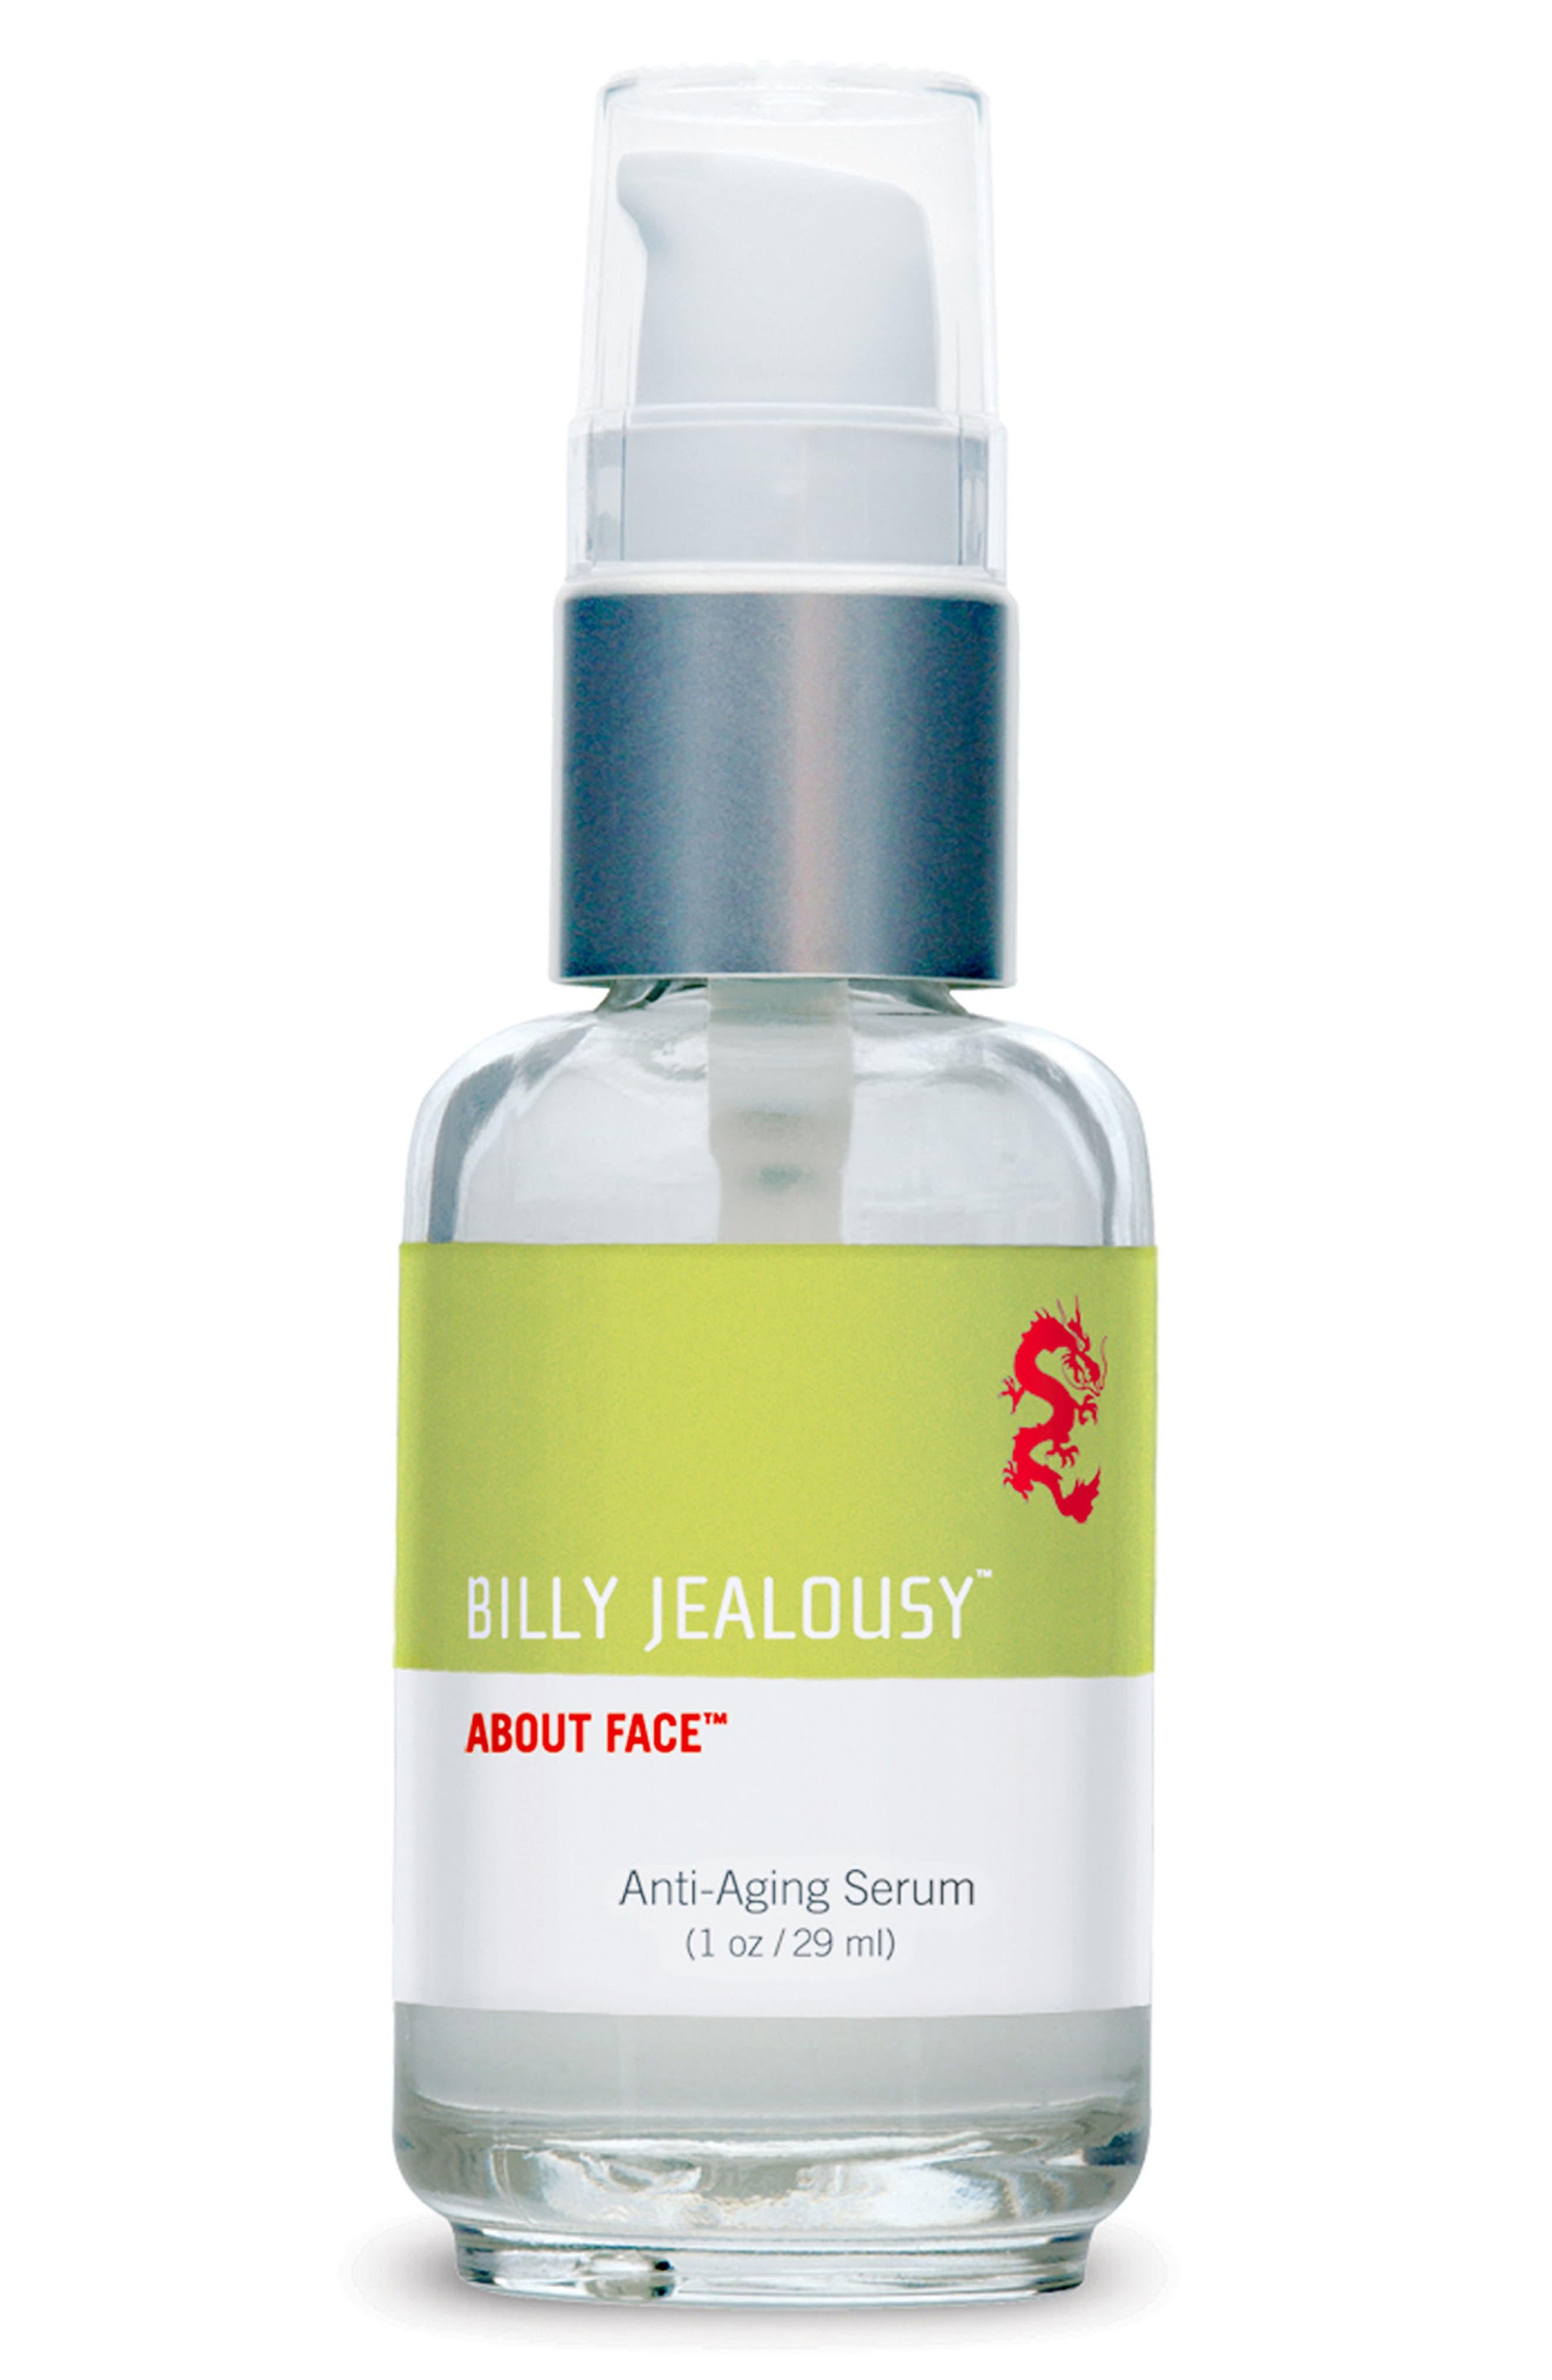 Alternate Image 1 Selected - Billy Jealousy 'About Face' Anti-Aging Serum